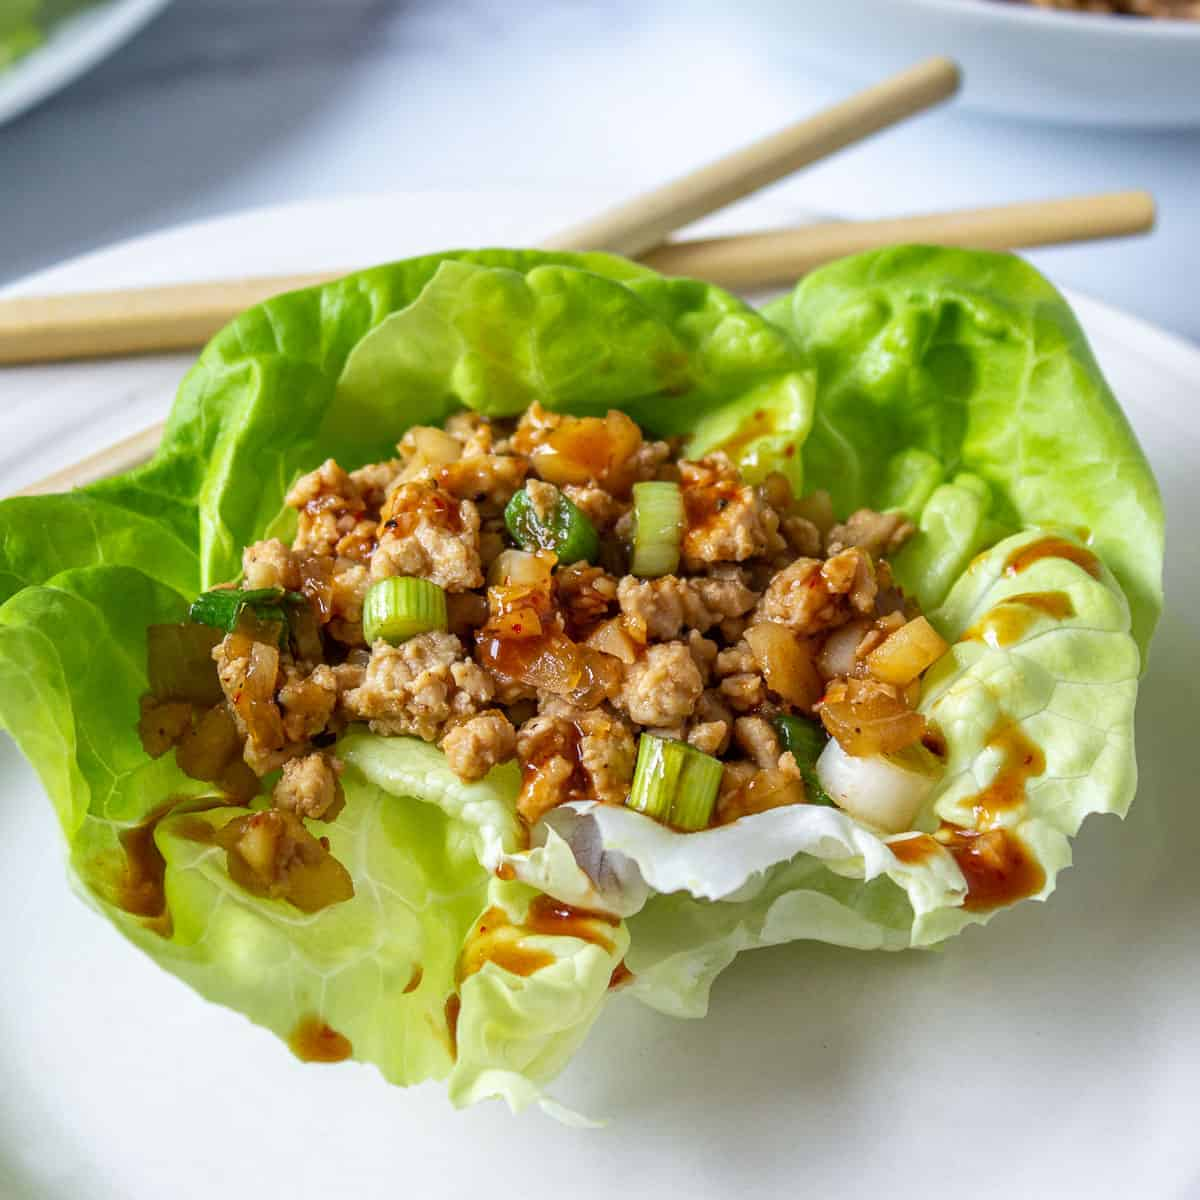 Bibb lettuce filled with cooked chicken and green onions.